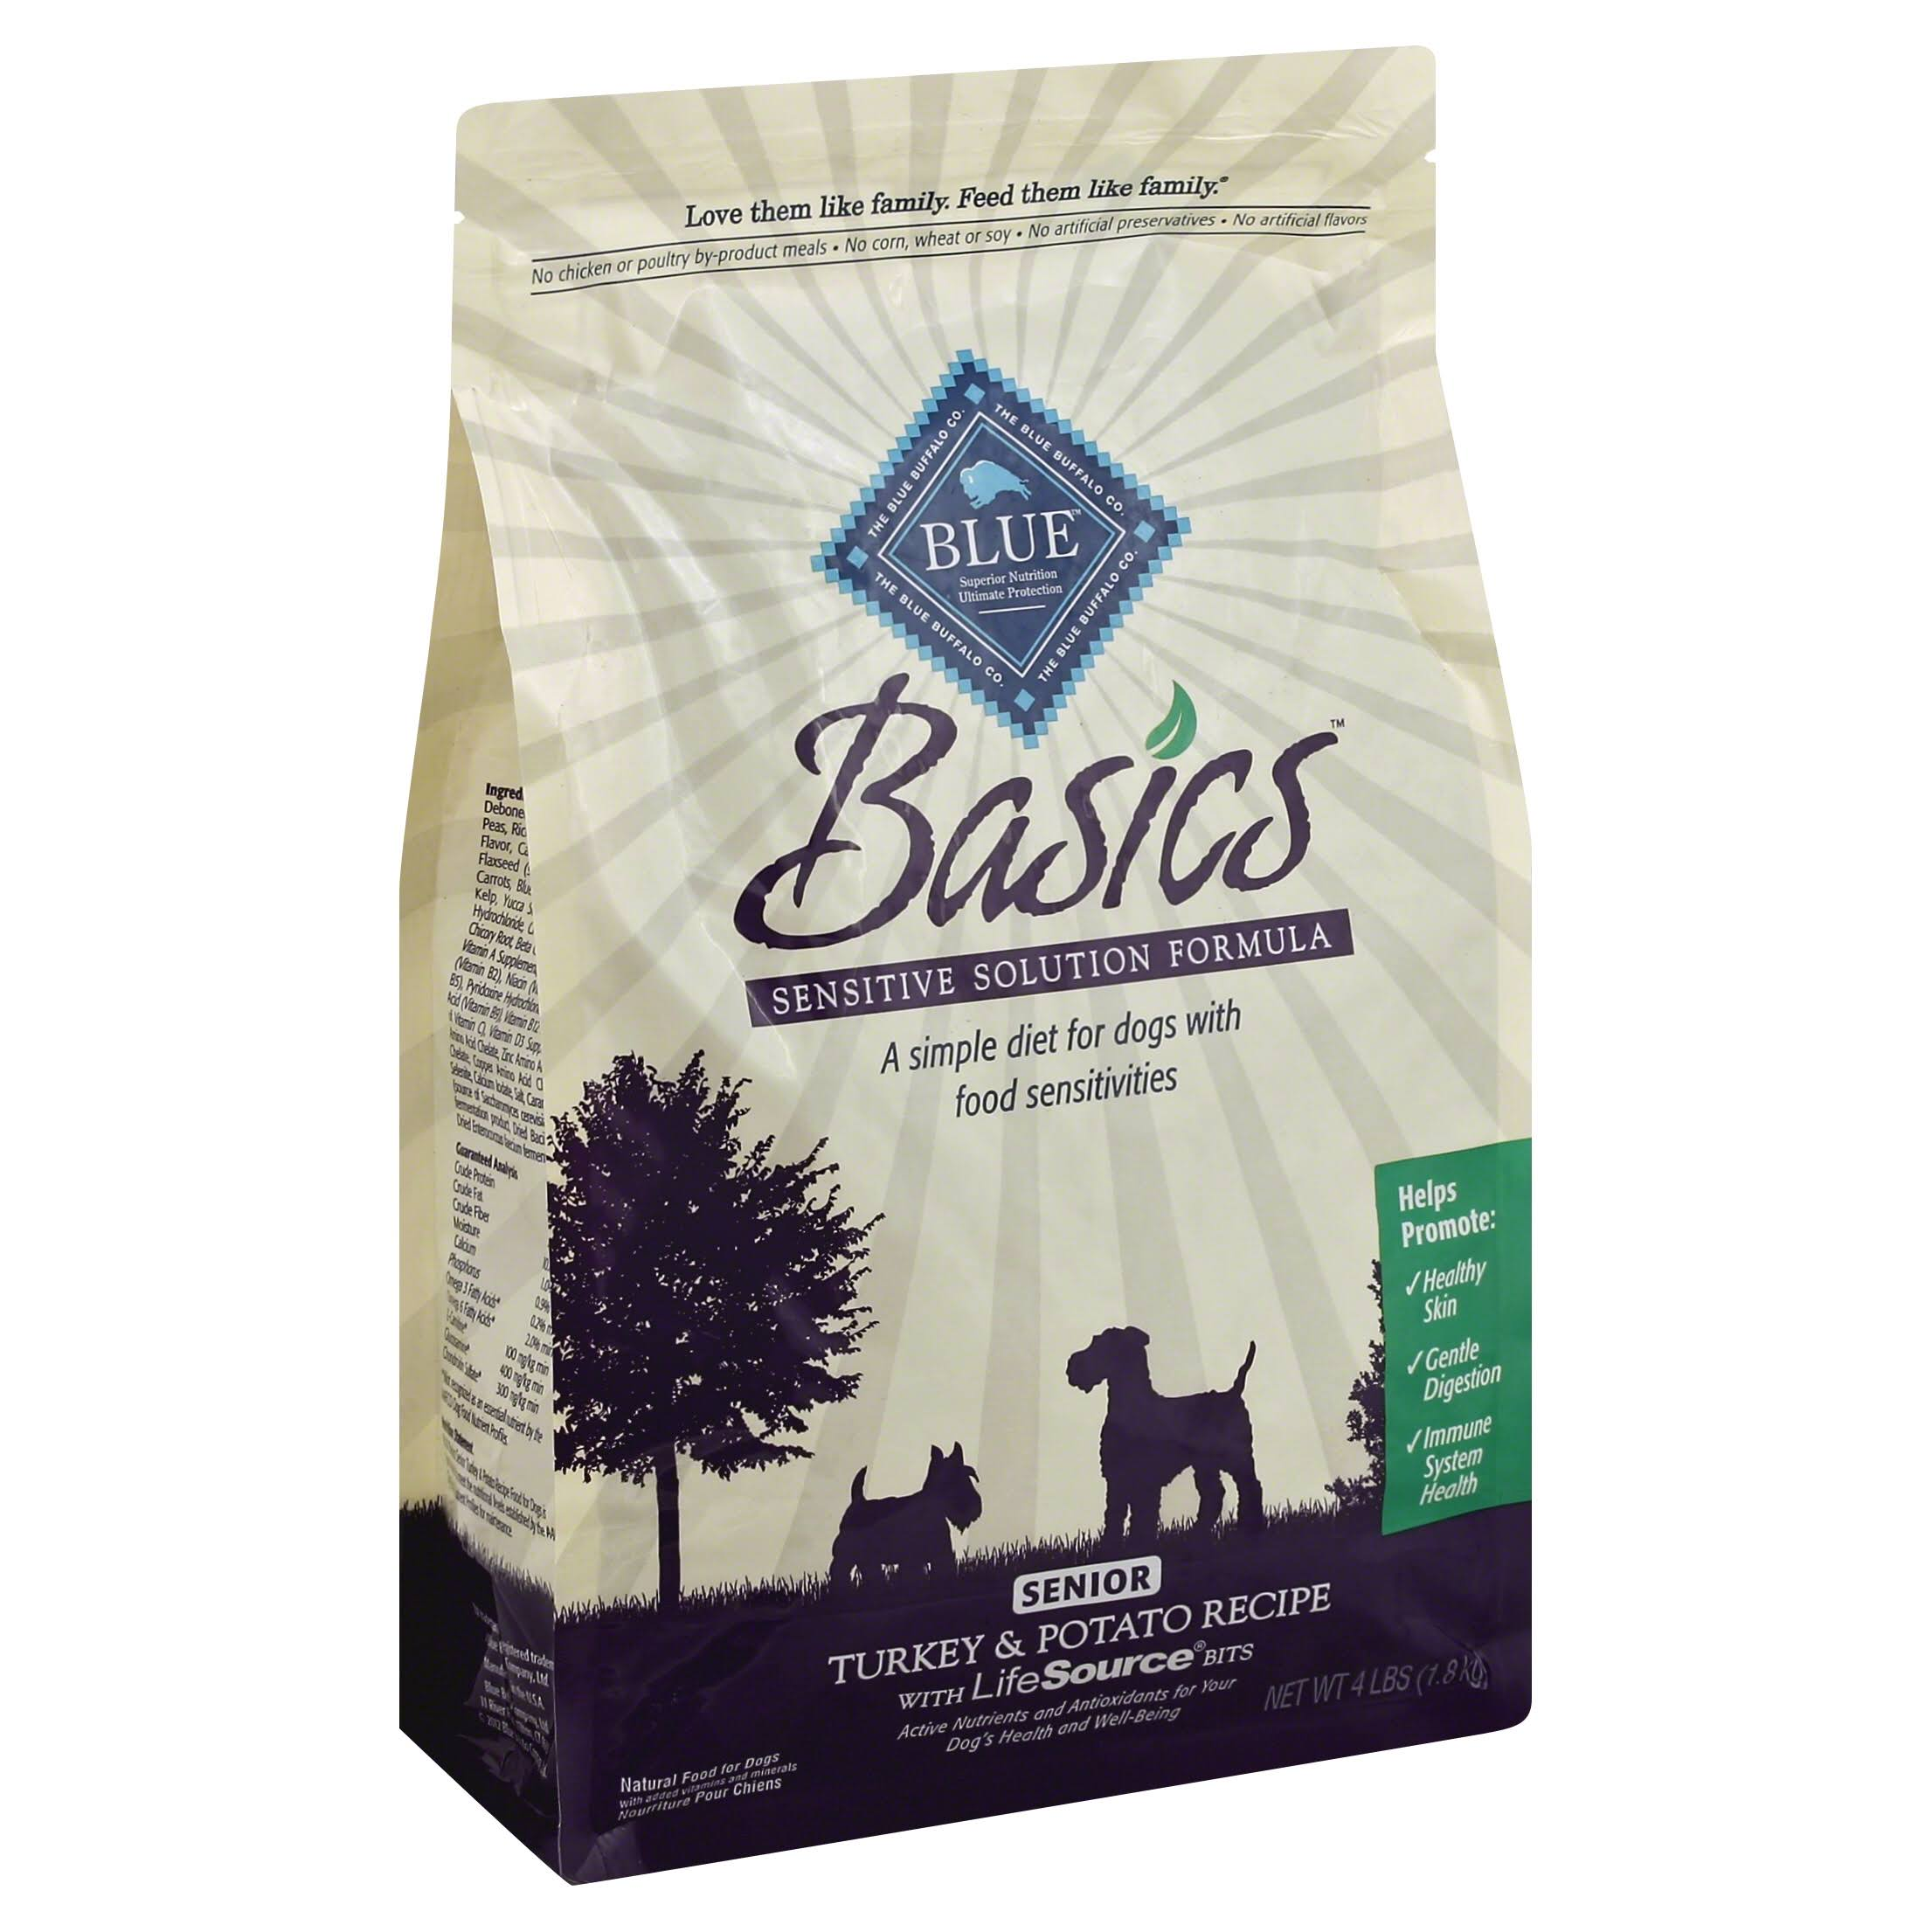 Basics Dog Food - Turkey & Potato, 4lb